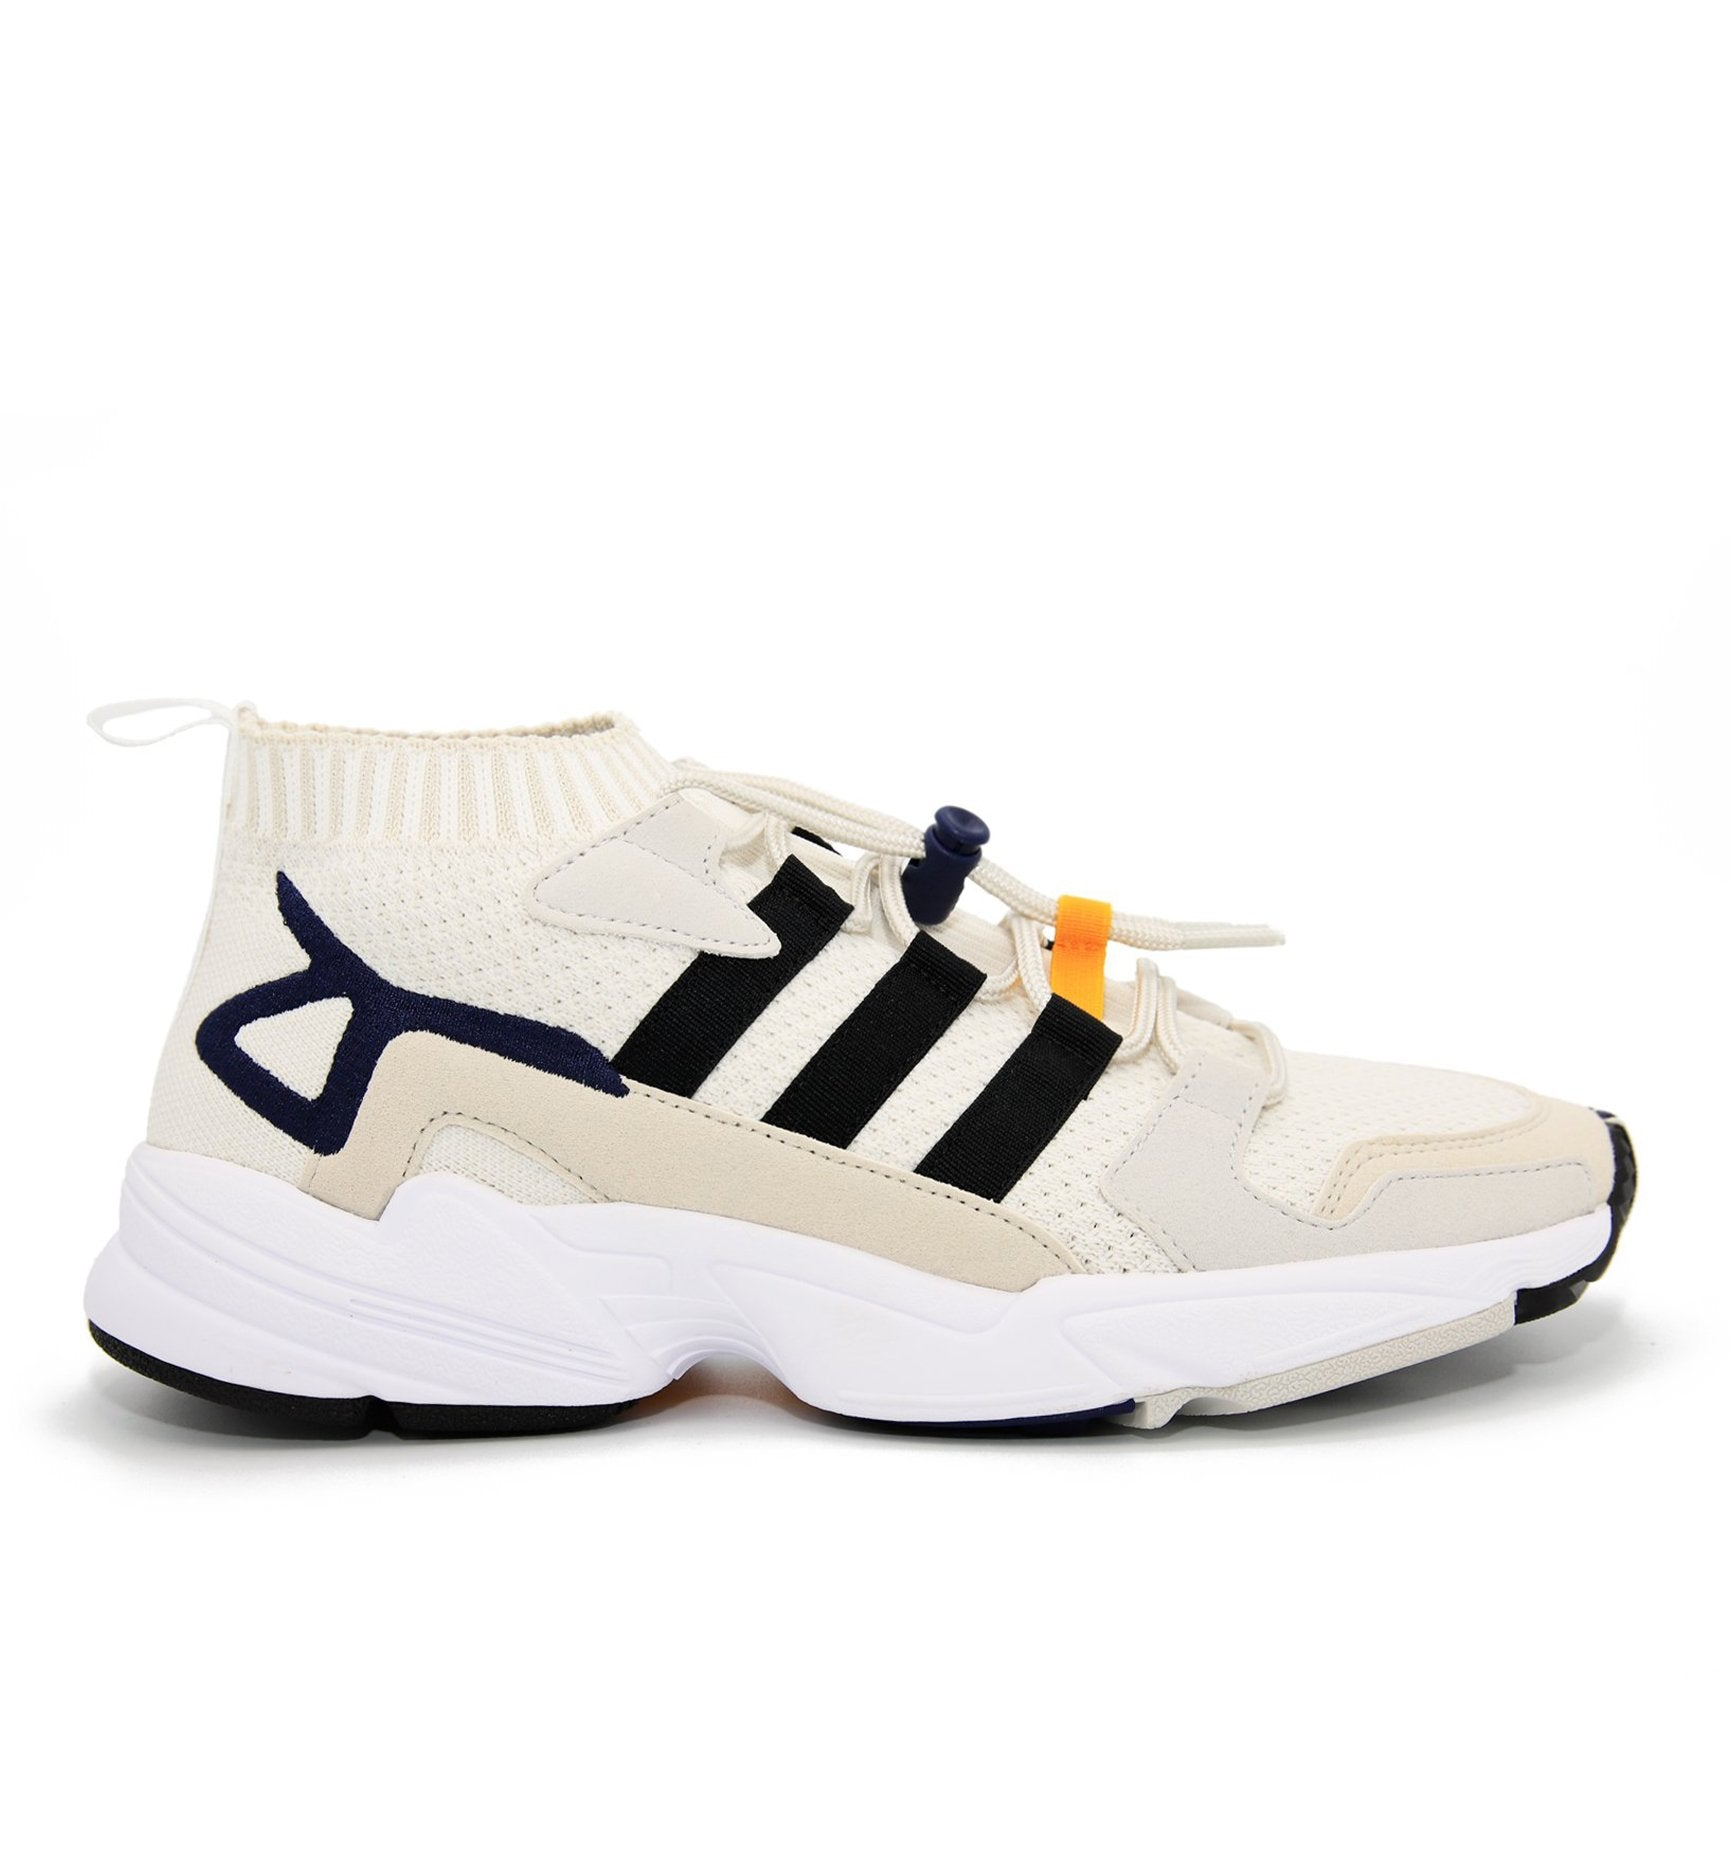 adidas Falcon Workshop - Off-White/Navy